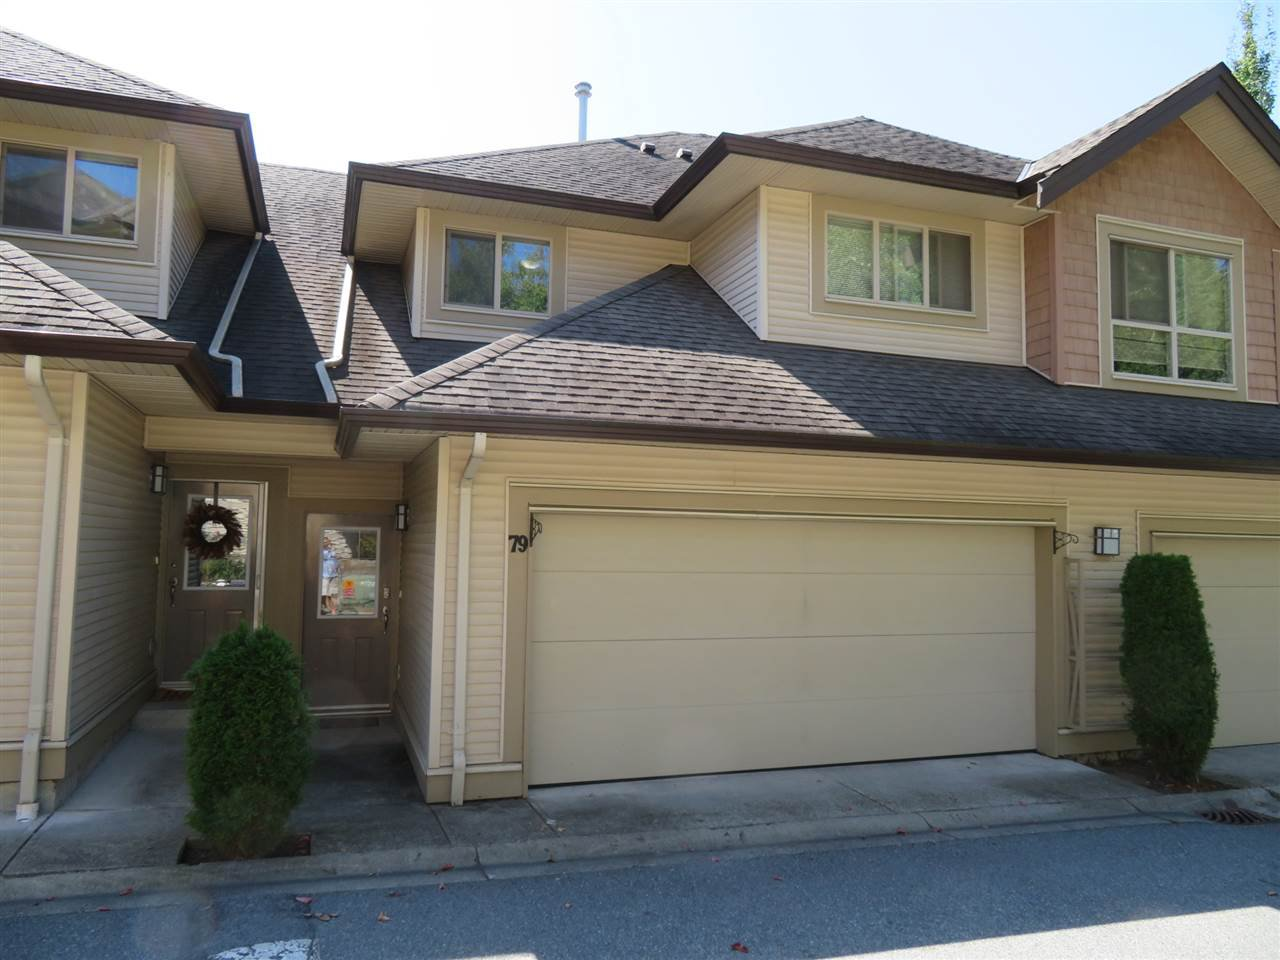 """Main Photo: 79 20350 68 Avenue in Langley: Willoughby Heights Townhouse for sale in """"Sunridge"""" : MLS®# R2399690"""